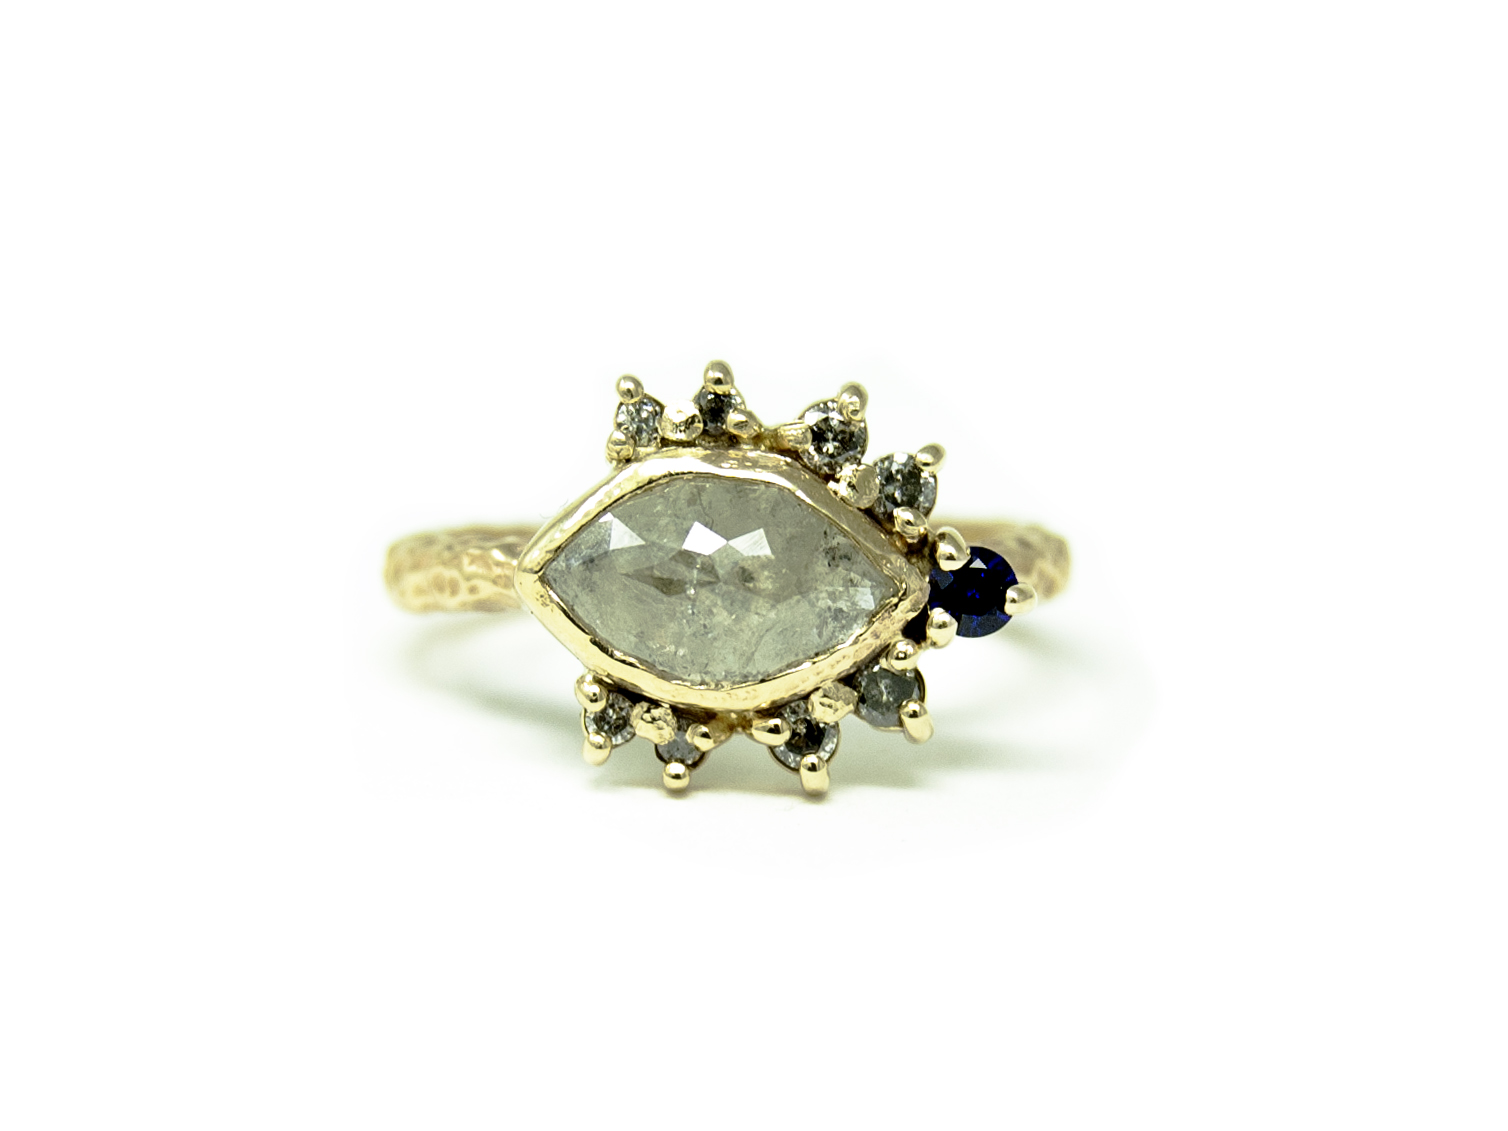 Show stopper! A beautiful one of a kind engagement ring for Mandy.